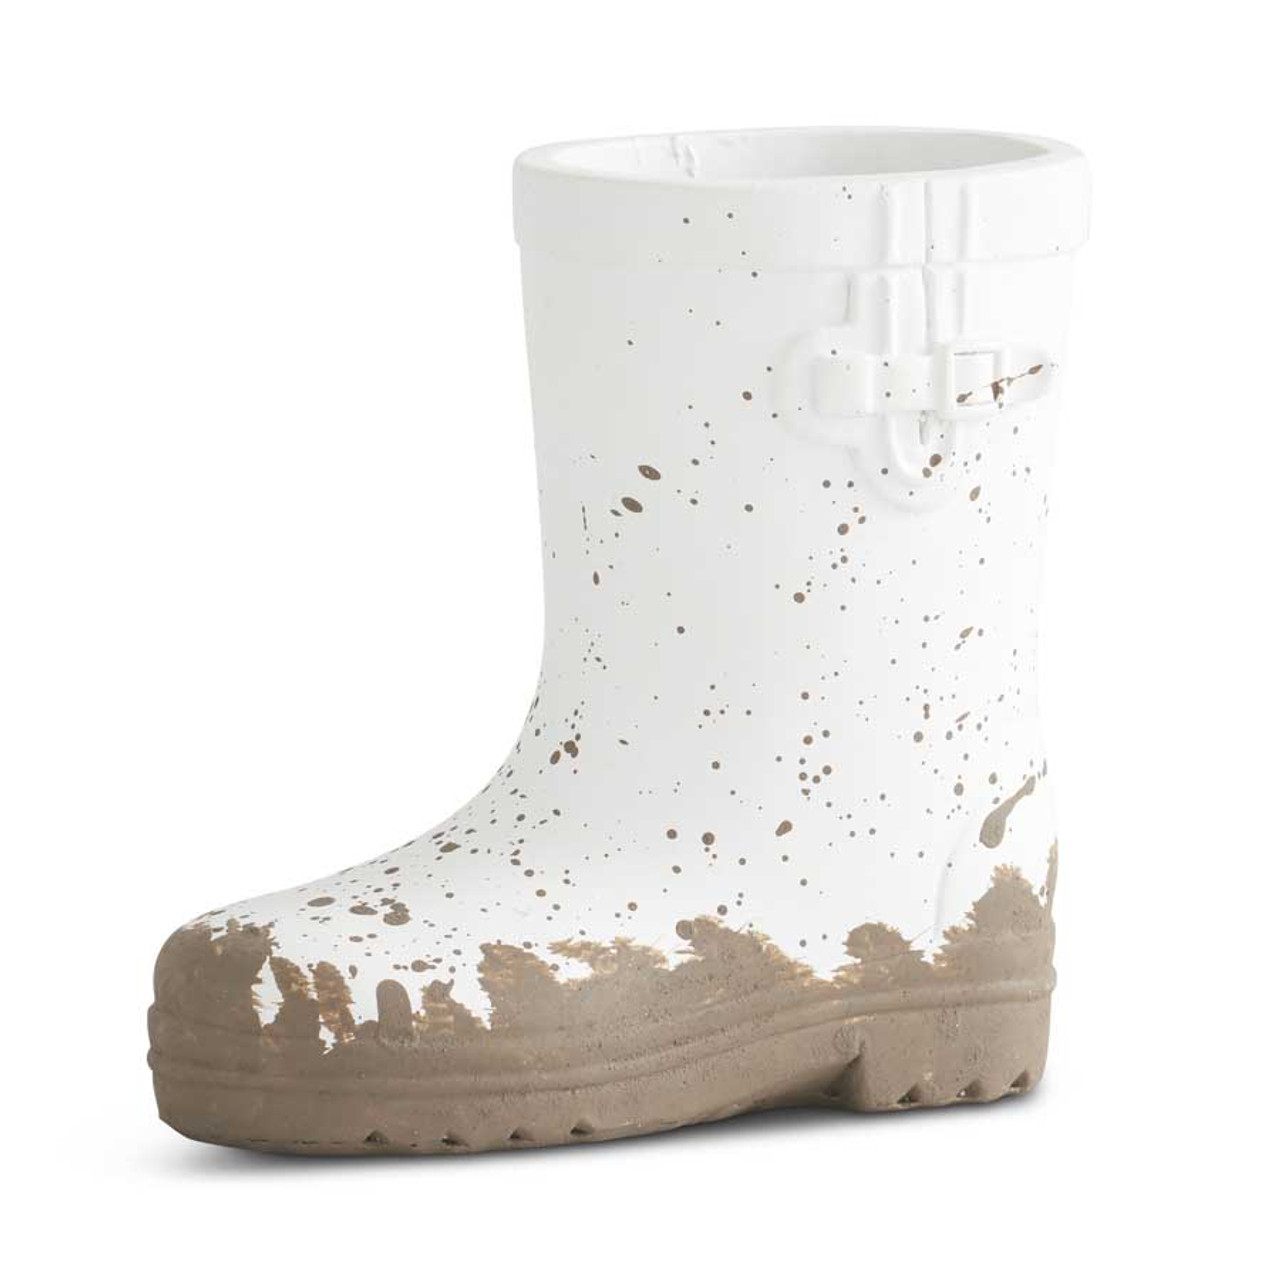 """Adorable 4.25"""" white resin boot. Perfect touch to add to your Spring decor."""